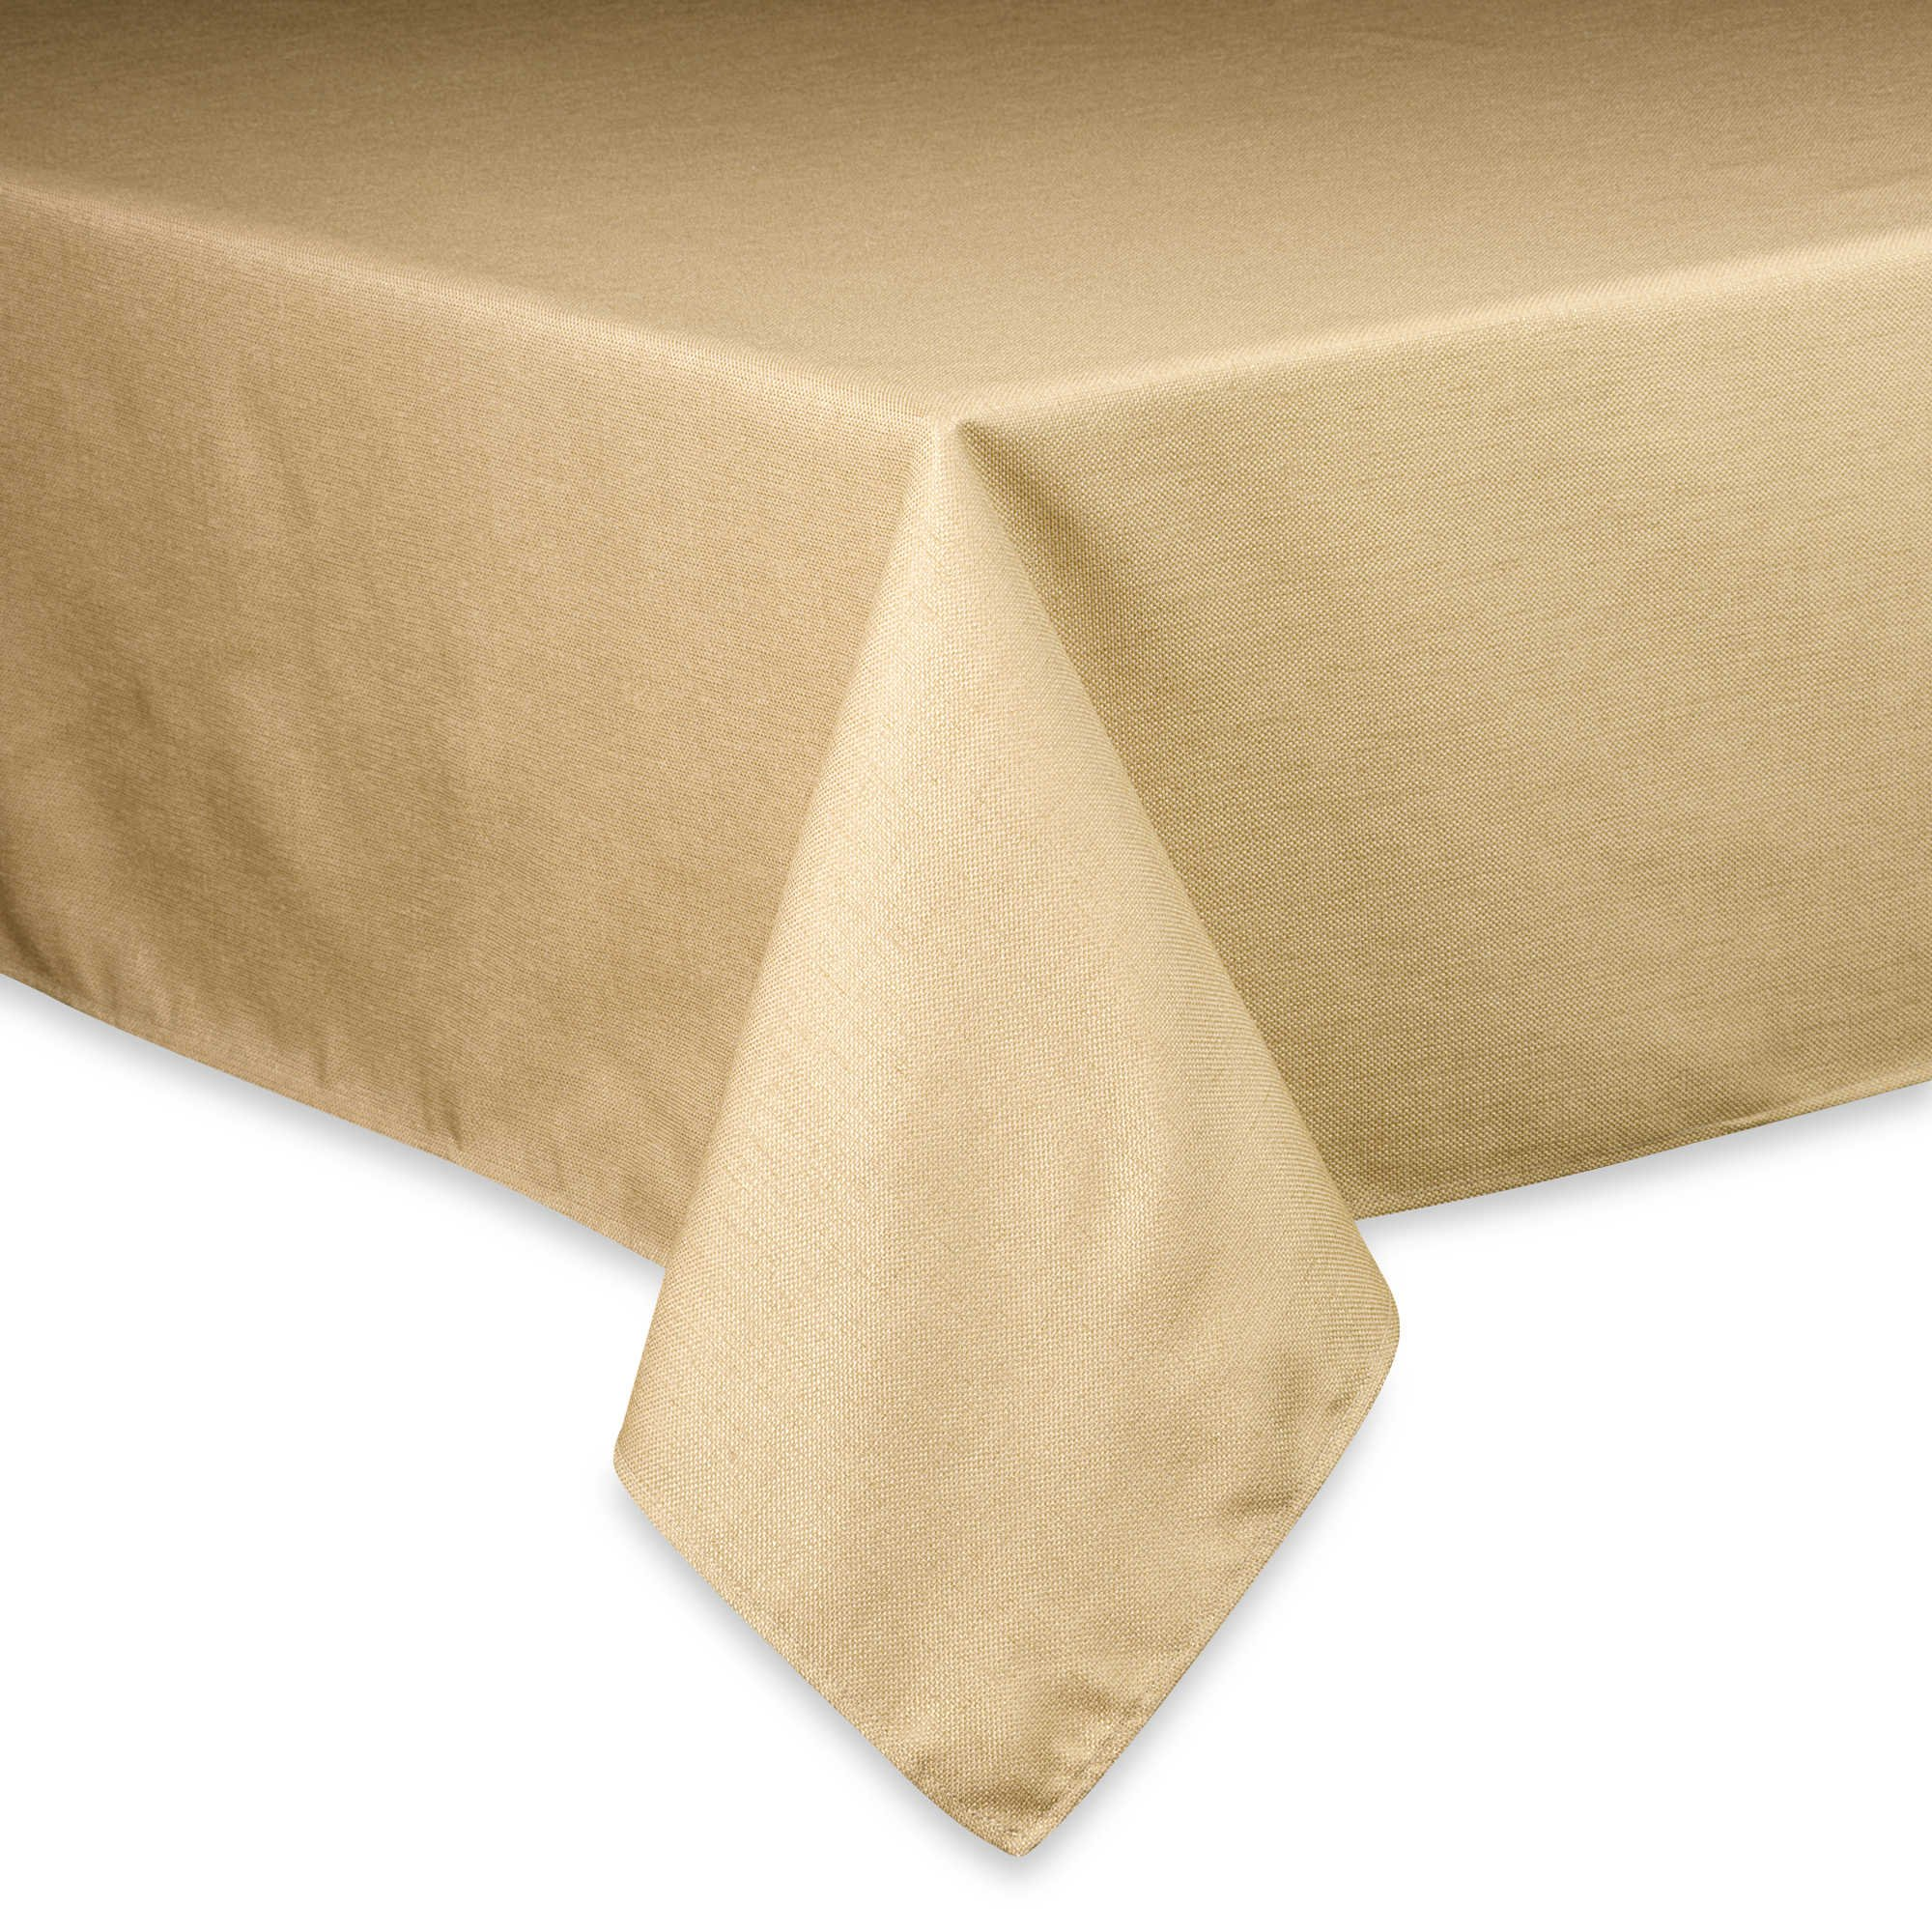 Basketweave Easy Care Tablecloth - (60 x 120 inch, Birch)